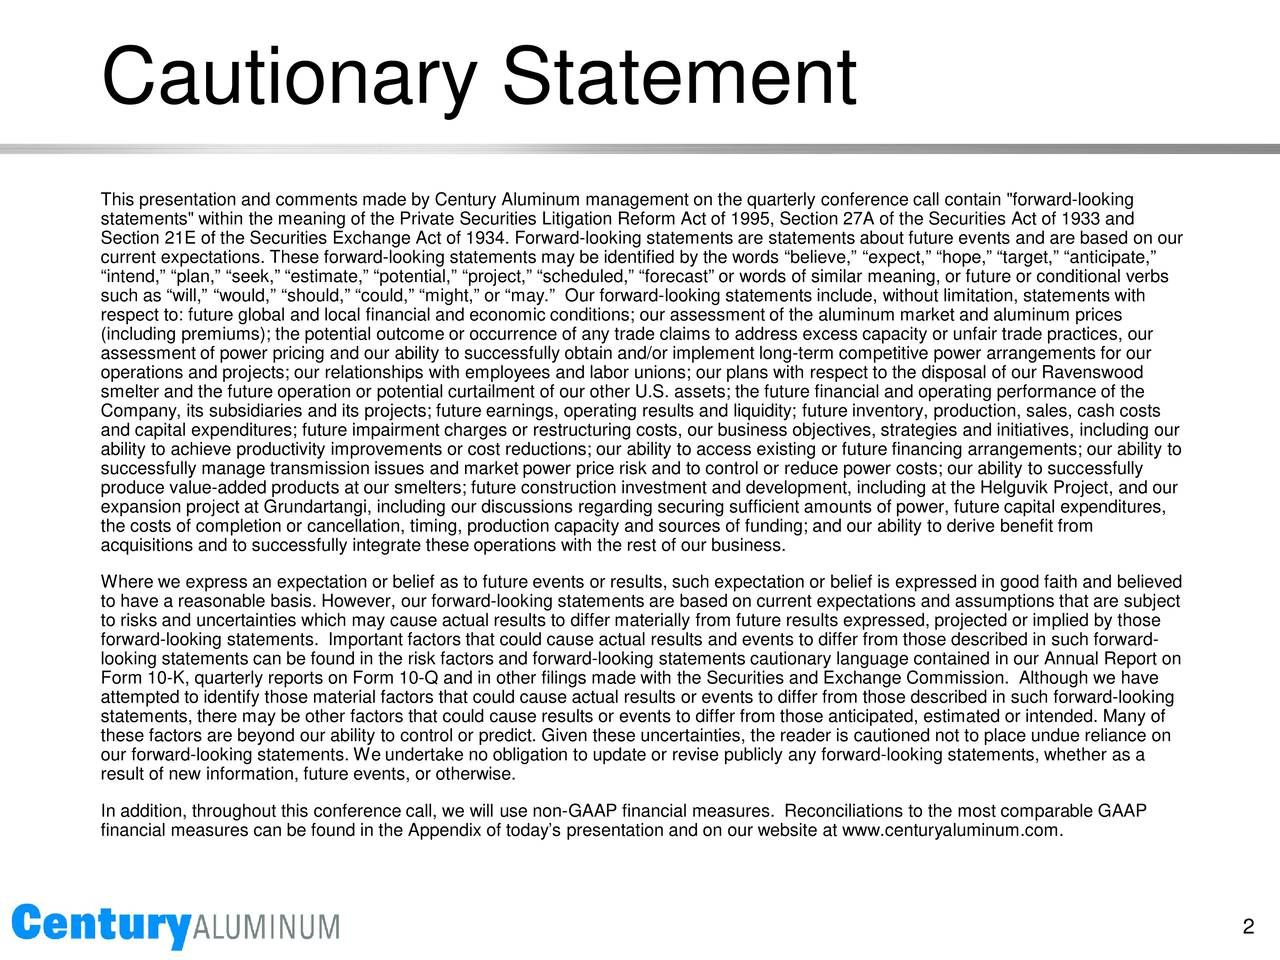 """This presentation and comments made by Century Aluminum management on the quarterly conference call contain """"forward- looking statements"""" within the meaning of the Private Securities Litigation Reform Act of 1995, Section 27A of the Securities Act of 1933 and Section 21E of the Securities Exchange Act of 1934. Forward-looking statements are statements about future events and are basedon our current expectations. These forward-looking statements may be identified by the words believe, expect, hope, target, anticipate, intend, plan, seek, estimate, potential, project, scheduled, forecast or words of similar meaning, or futureor conditional verbs such as will, would, should, could, might, or may. Our forward-looking statements include, without limitation, statements with respect to: future global and local financial and economic conditions; our assessment of the aluminum market and aluminuiesrc (including premiums); the potential outcome or occurrence of any trade claims to address excess capacity or unfair trade practices, our assessment of power pricing and our ability to successfully obtain and/or implement long-term competitive power arrangements forour operations and projects; our relationships with employees and labor unions; our plans with respect to the disposalof our Ravenswood smelter and the future operation or potential curtailment of our other U.S. assets; the future financial and operating performance of the Company, its subsidiaries and its projects; future earnings, operating results and liquidity; future inventory, production, sales, cash costs and capital expenditures; future impairment charges or restructuring costs, our business objectives, strategies anes, including our ability to achieve productivity improvements or cost reductions; our ability to access existing or future financing arrangements; our ability to successfully manage transmission issues and market power price risk and to control or reduce power costs; our ability essfully produce val"""